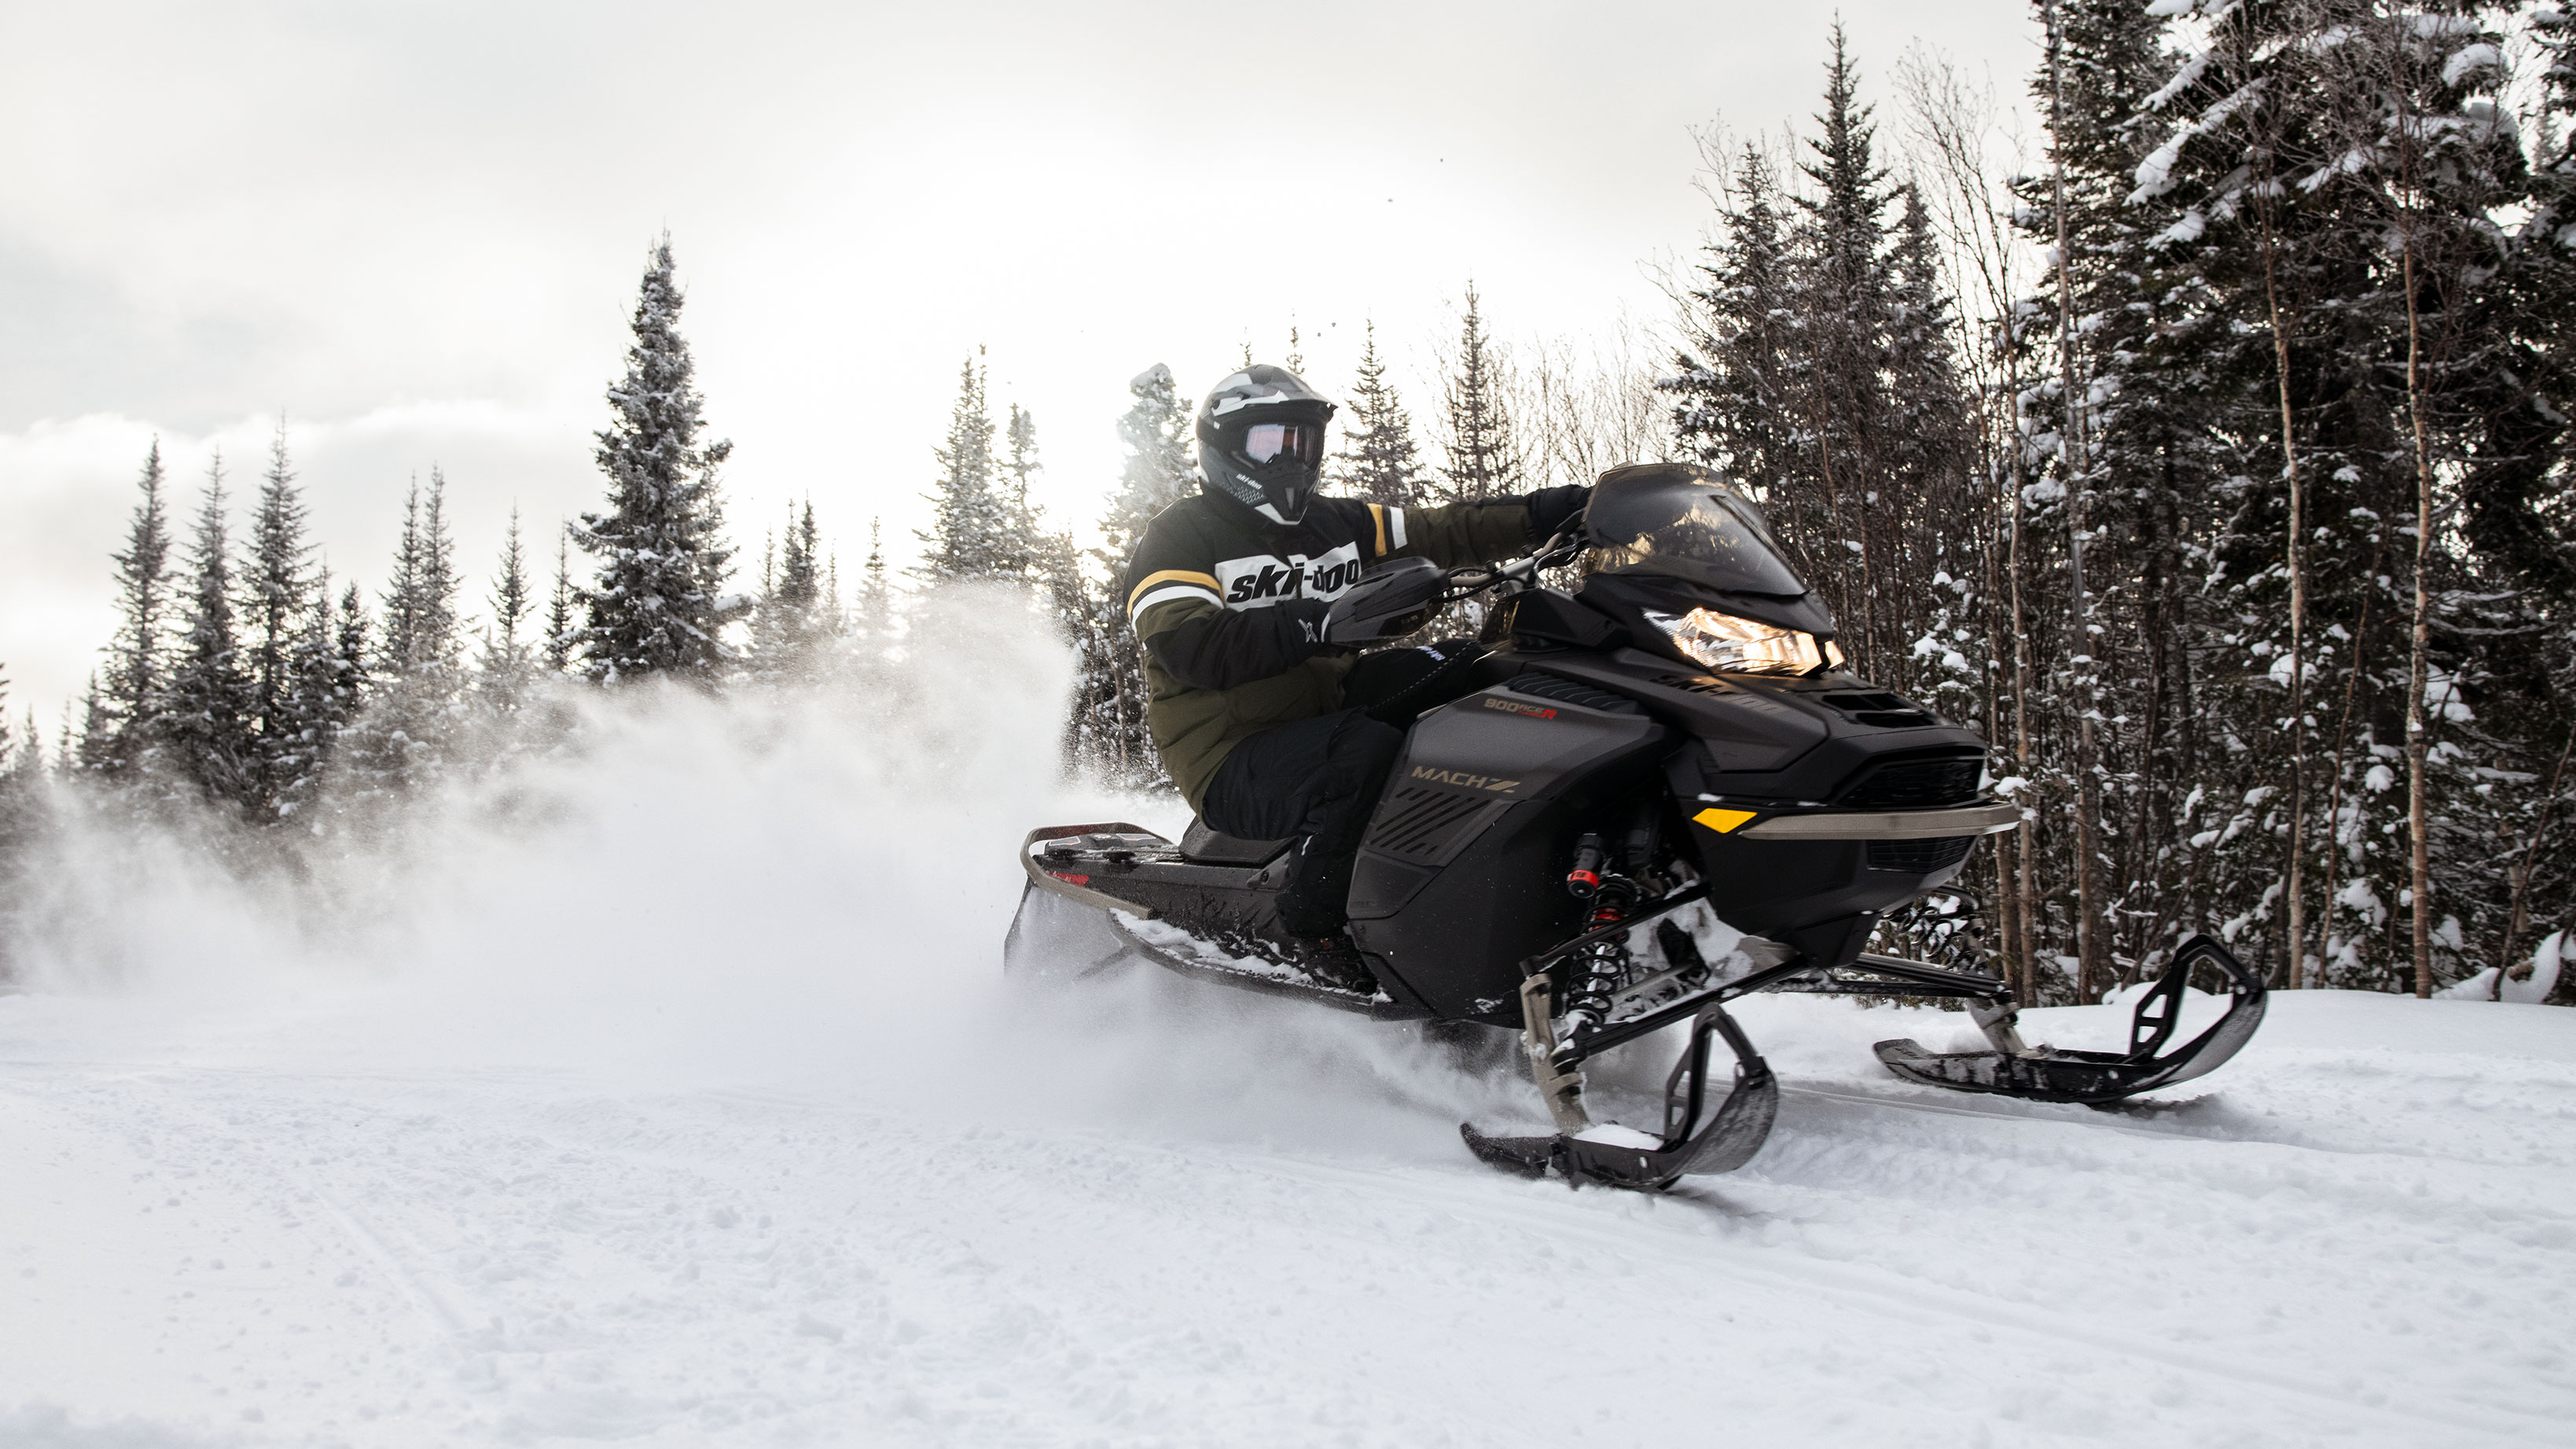 Man and his 2022 Ski-Doo Mach-Z on a trail